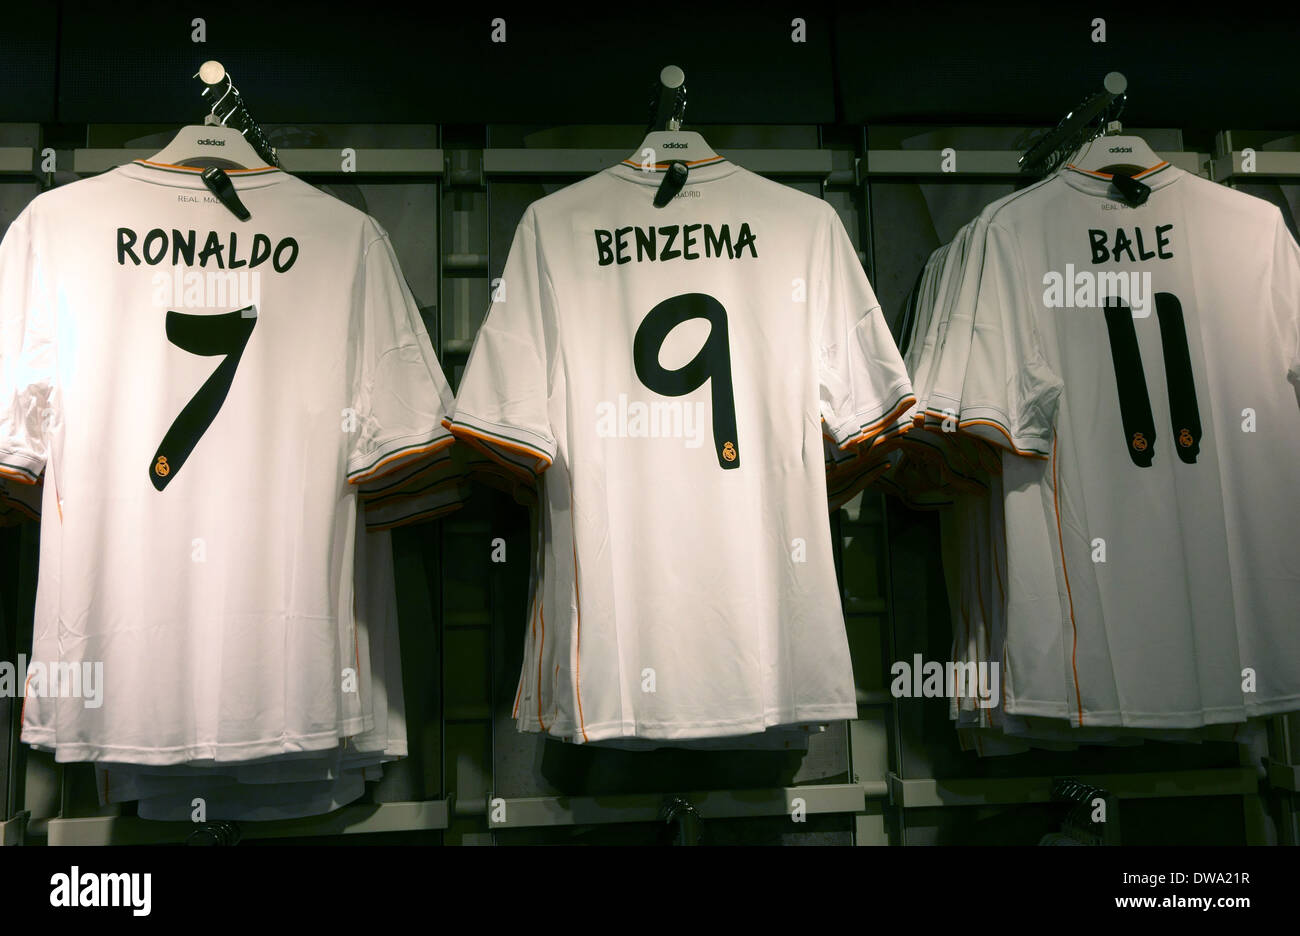 b0896e7eb Replica shirts on sale in official shop in Real Madrid s Bernabeu Stadium